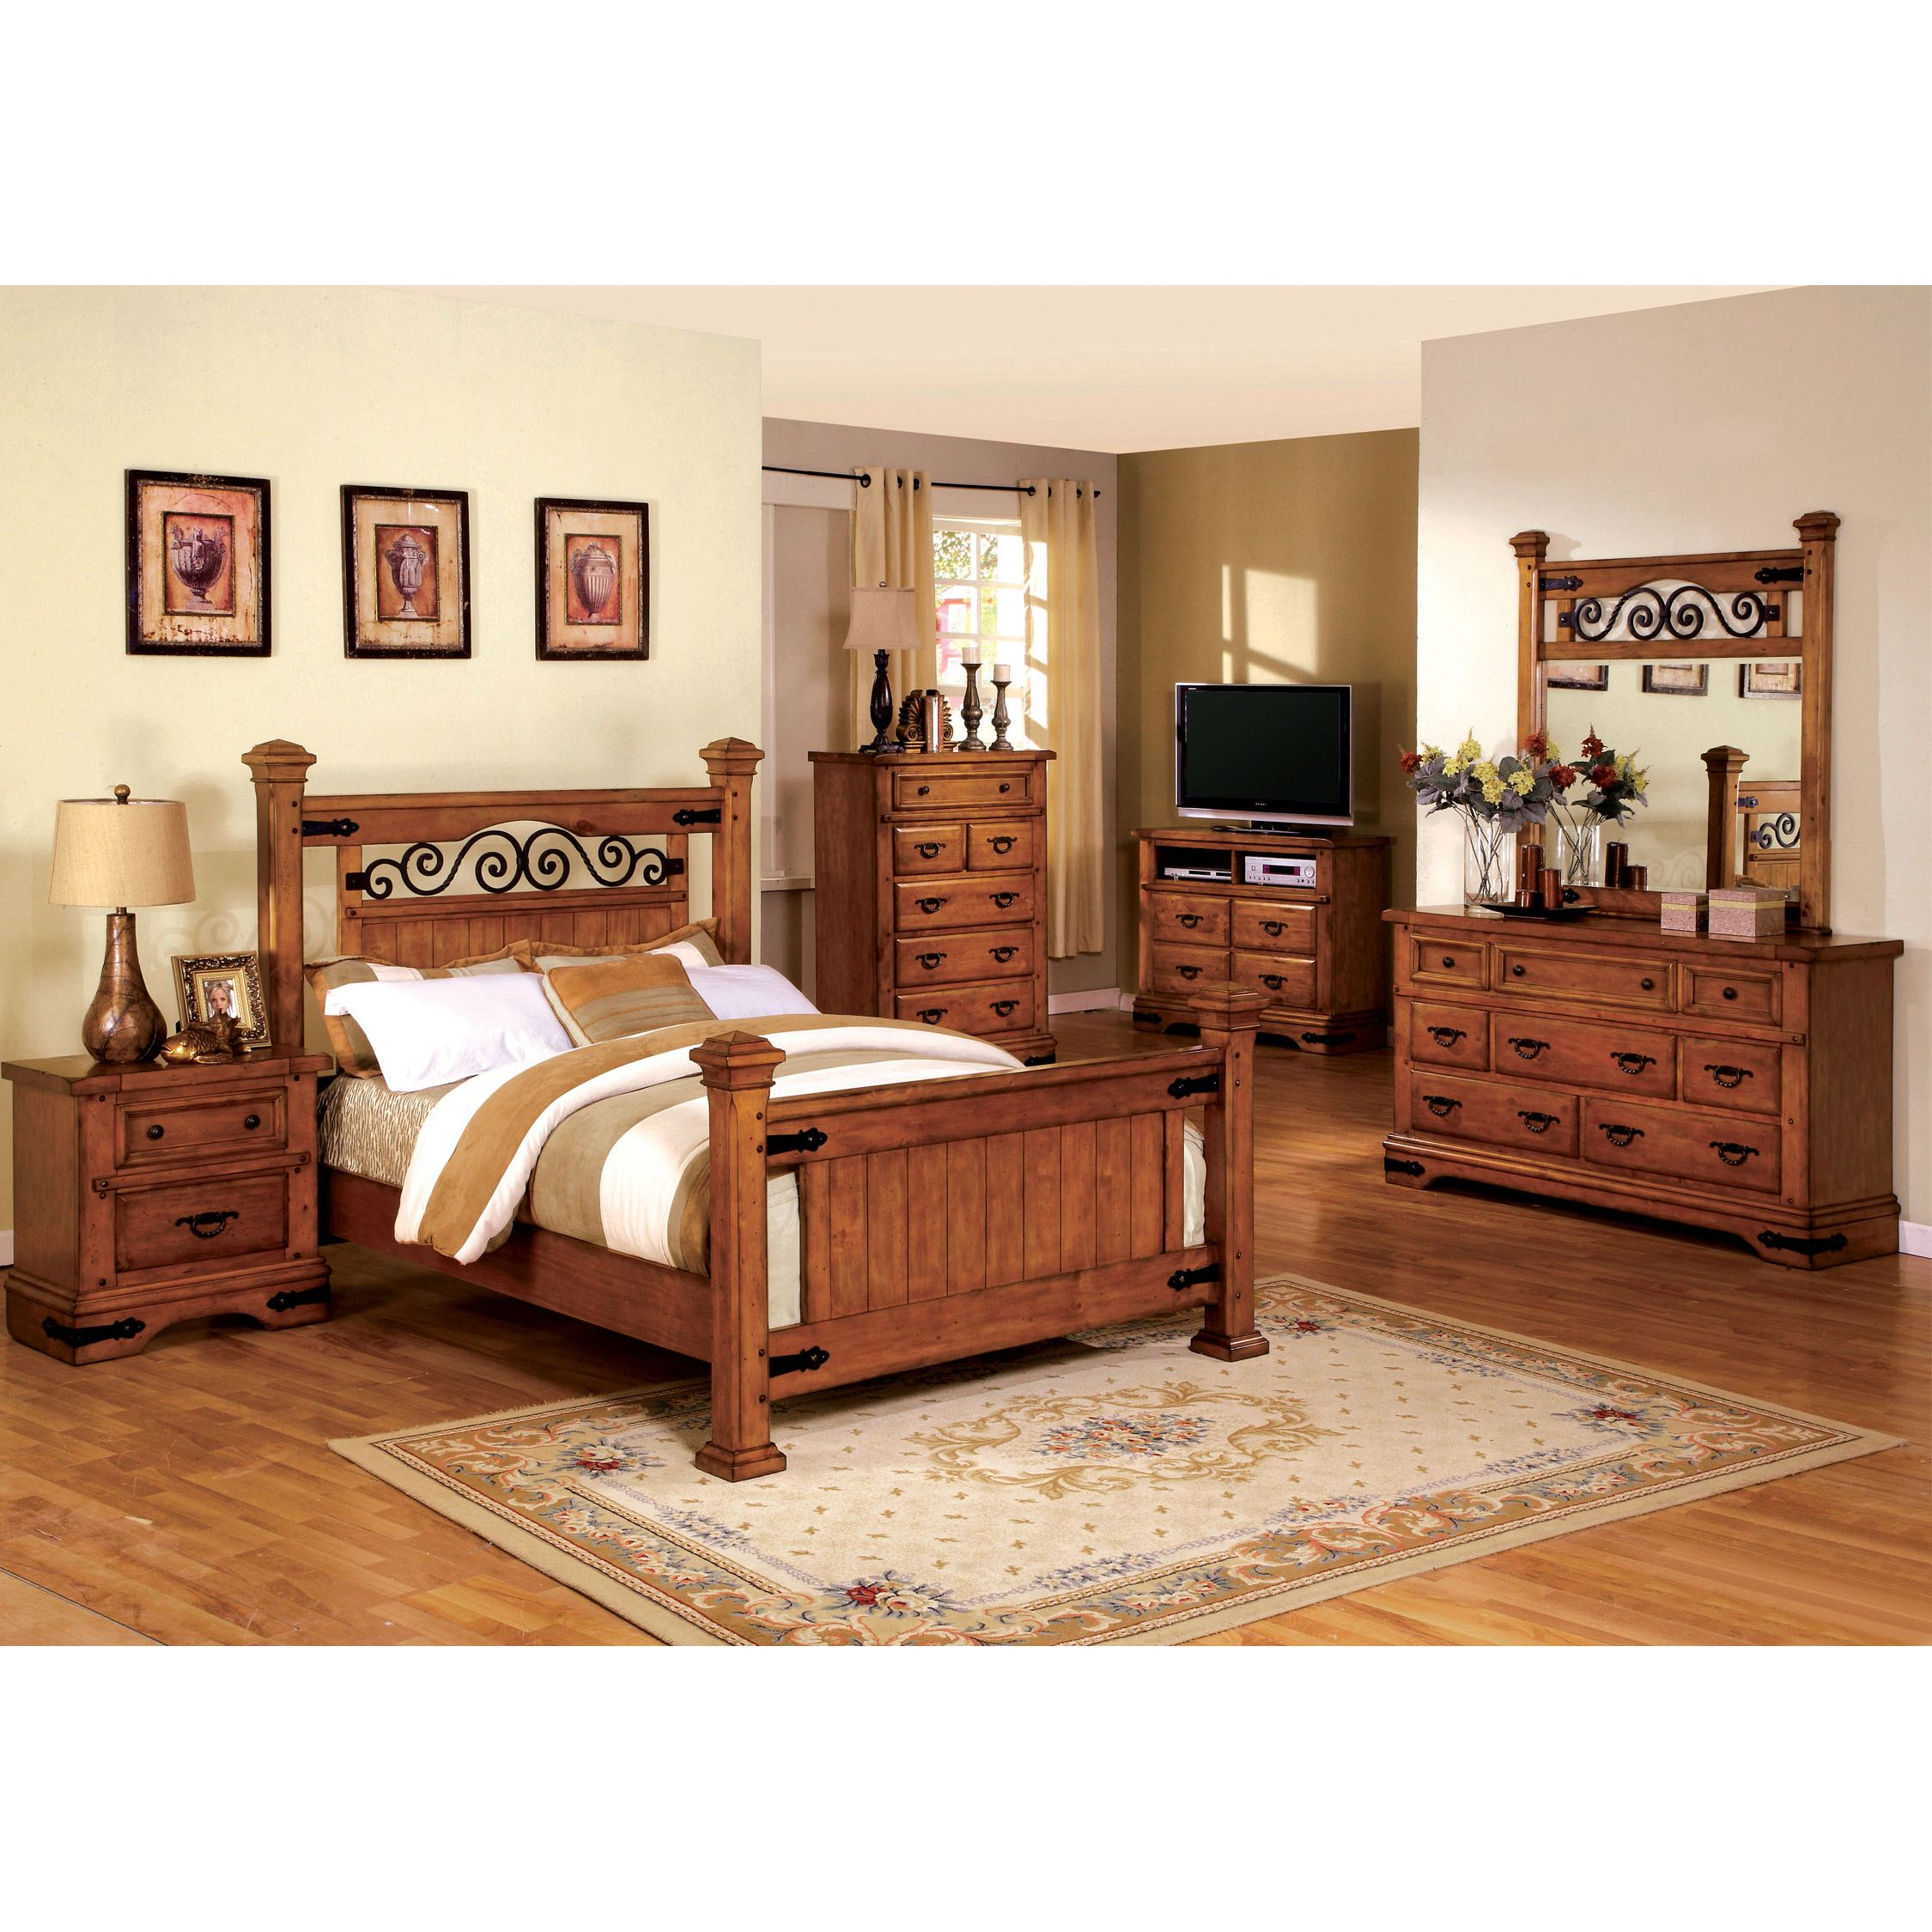 Country Master Bedroom Furniture Sets - Year of Clean Water